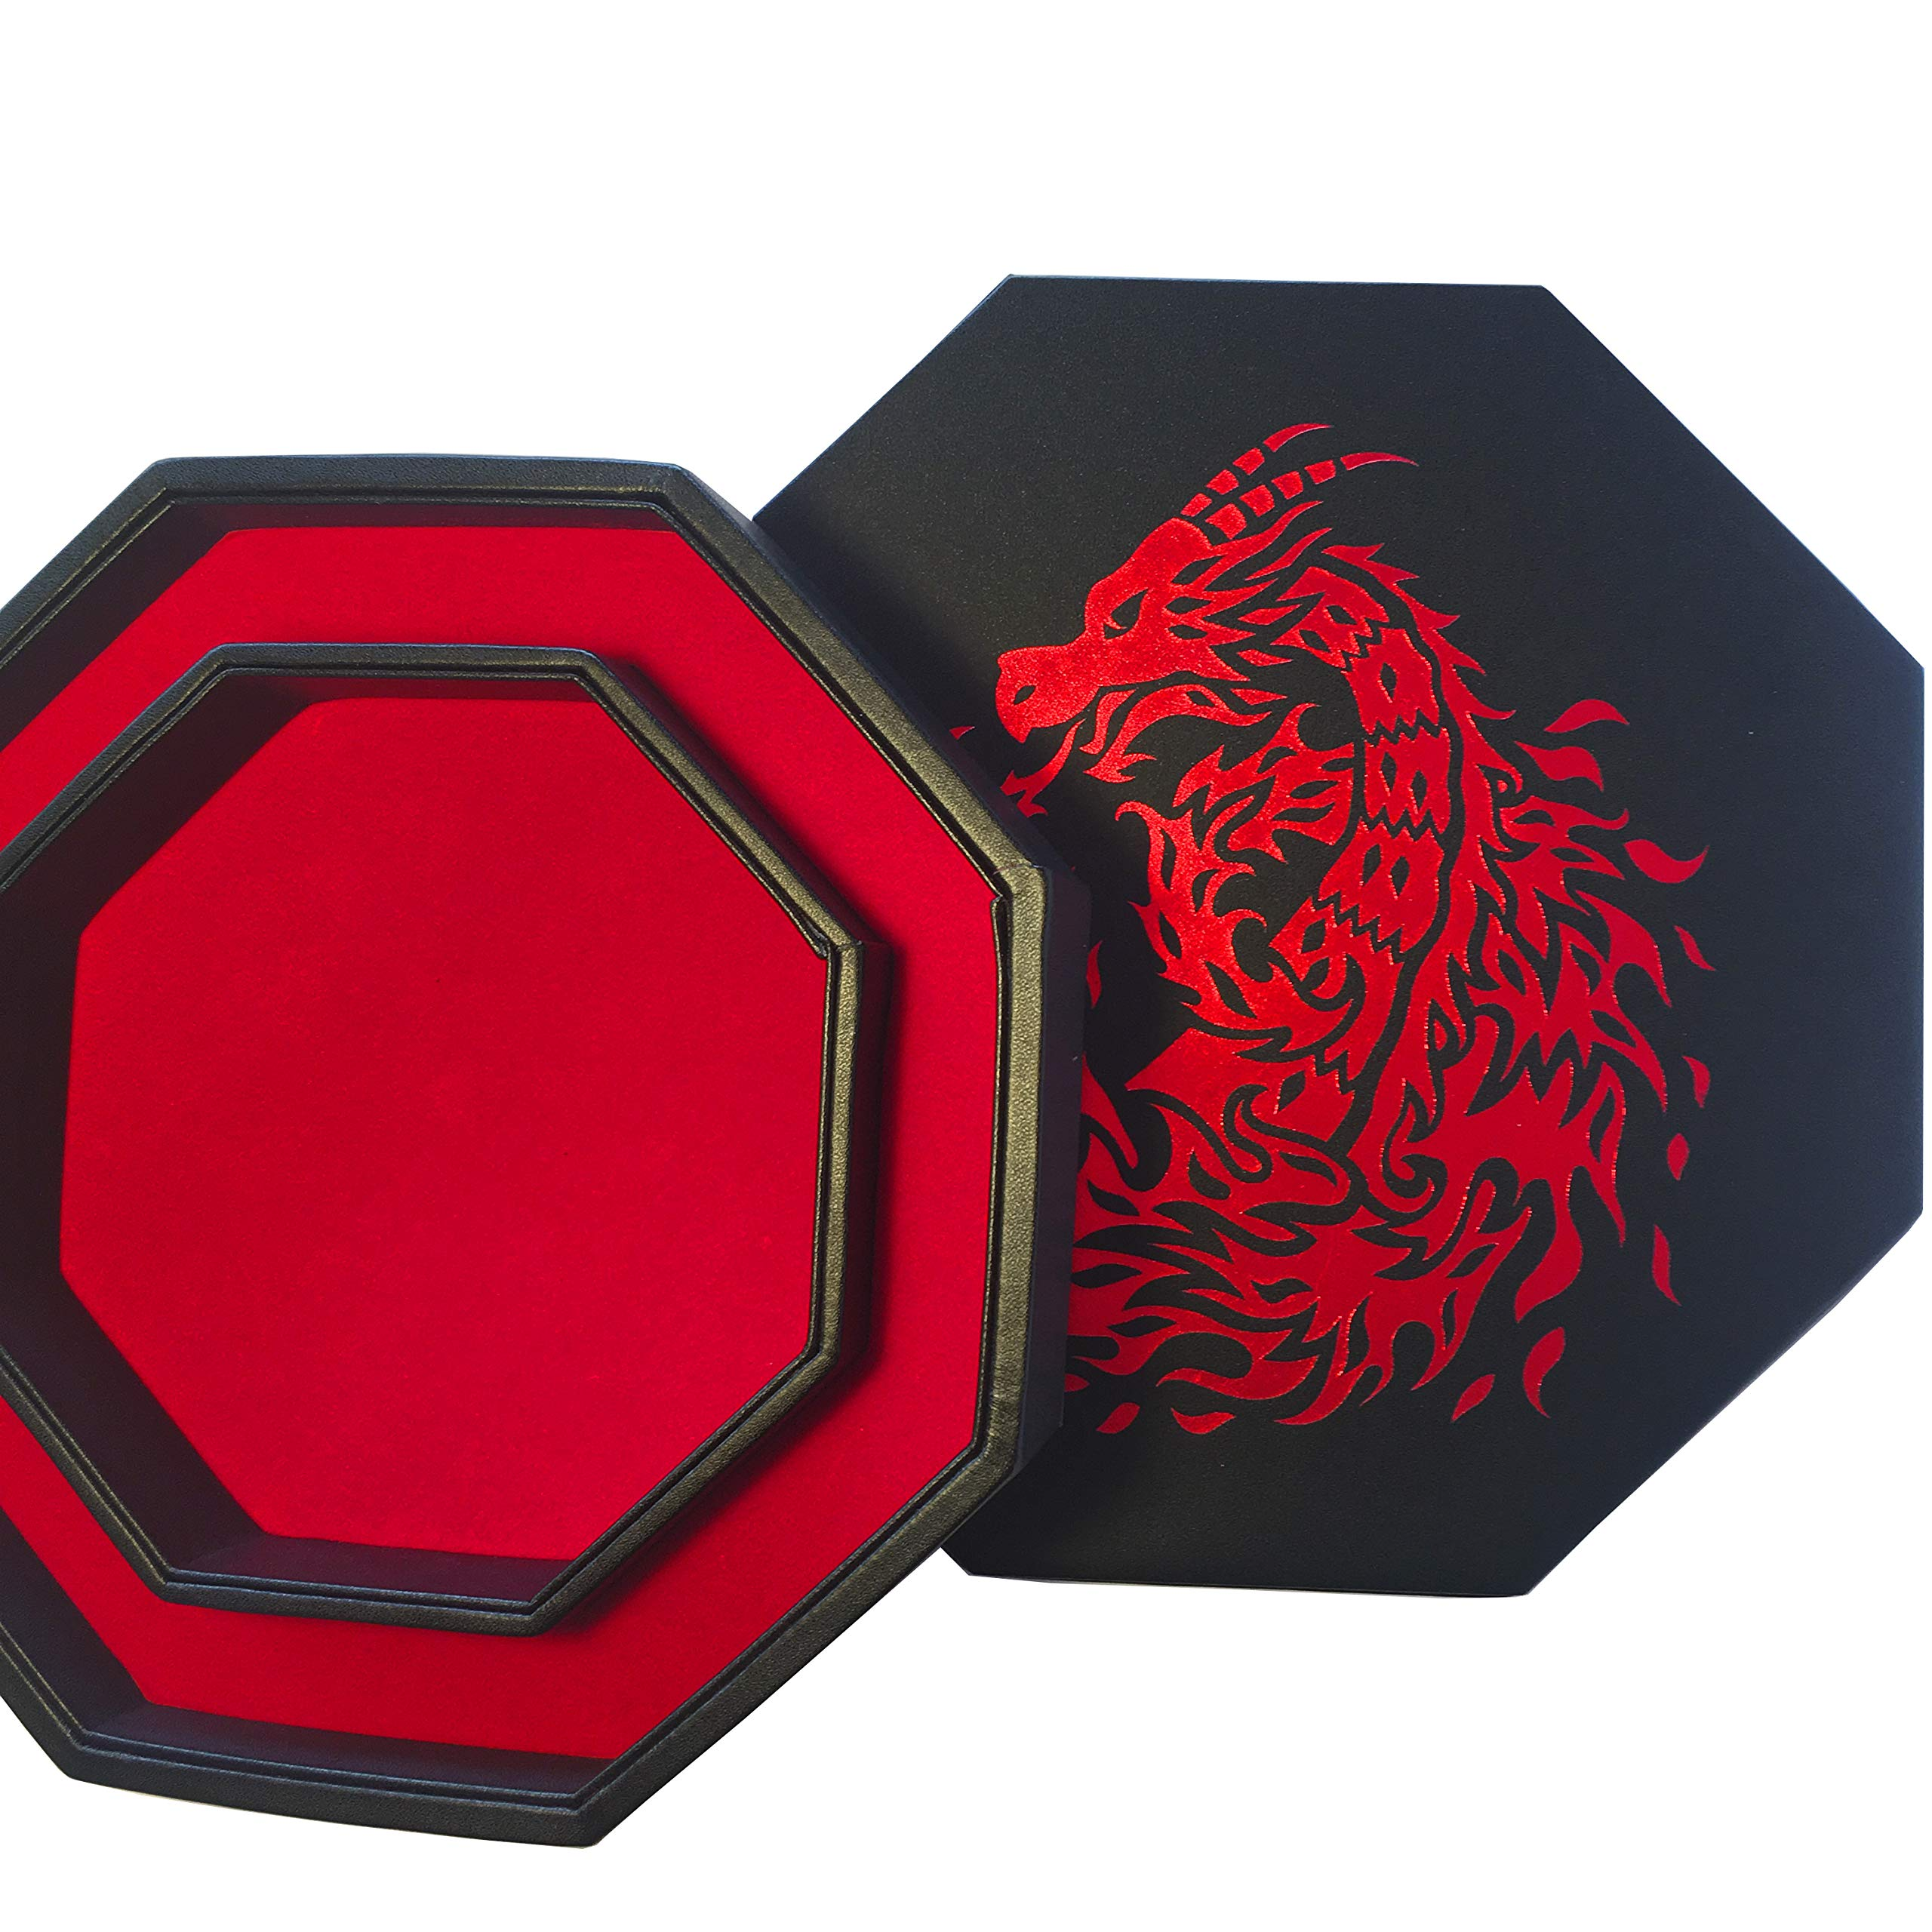 Fantasydice- RED - Fire Dragon - Dice Tray - 8'' Octagon with Lid and Dice Staging Area- Holds 5 Sets of Dice(7 / Standard) for All Tabletop RPGs Like D&D , Call of Cthulhu, Shadowrun. by Fantasydice (Image #2)